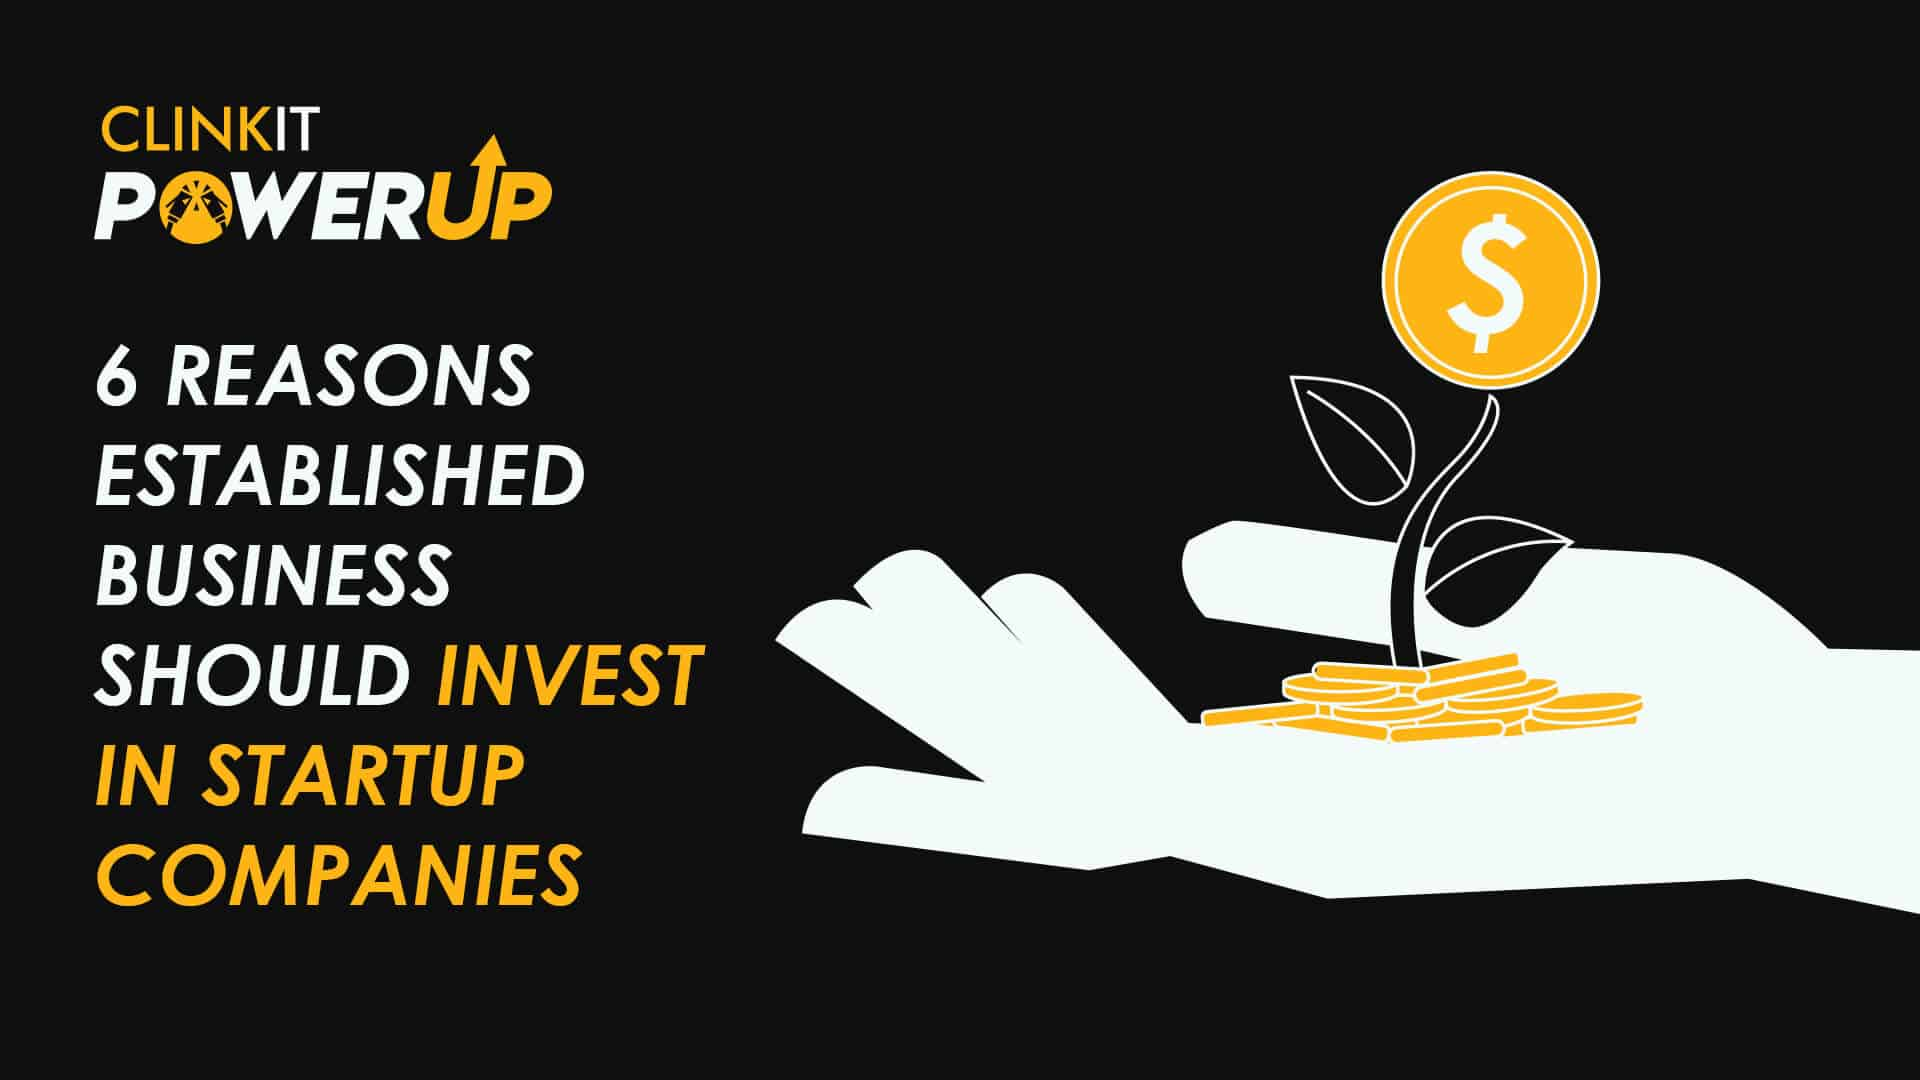 Invest in Startup Companies